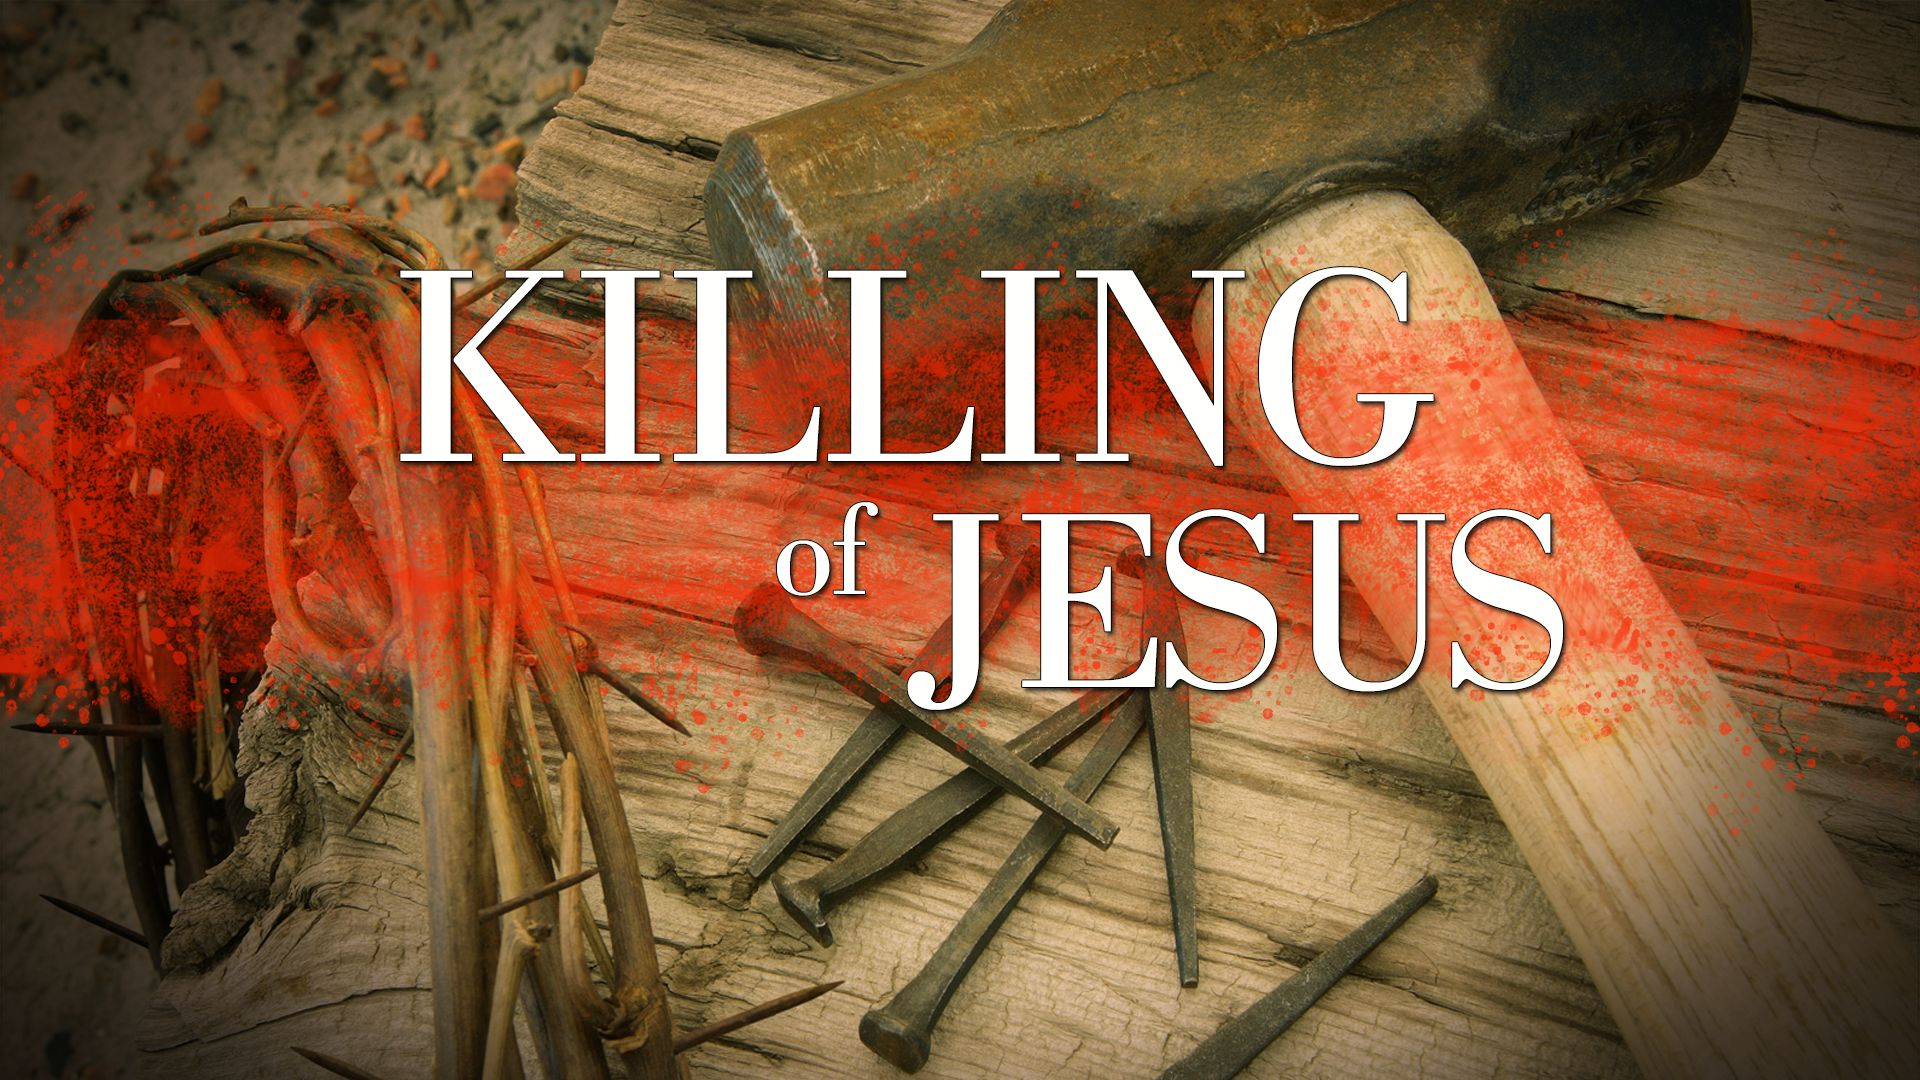 The Killing of Jesus